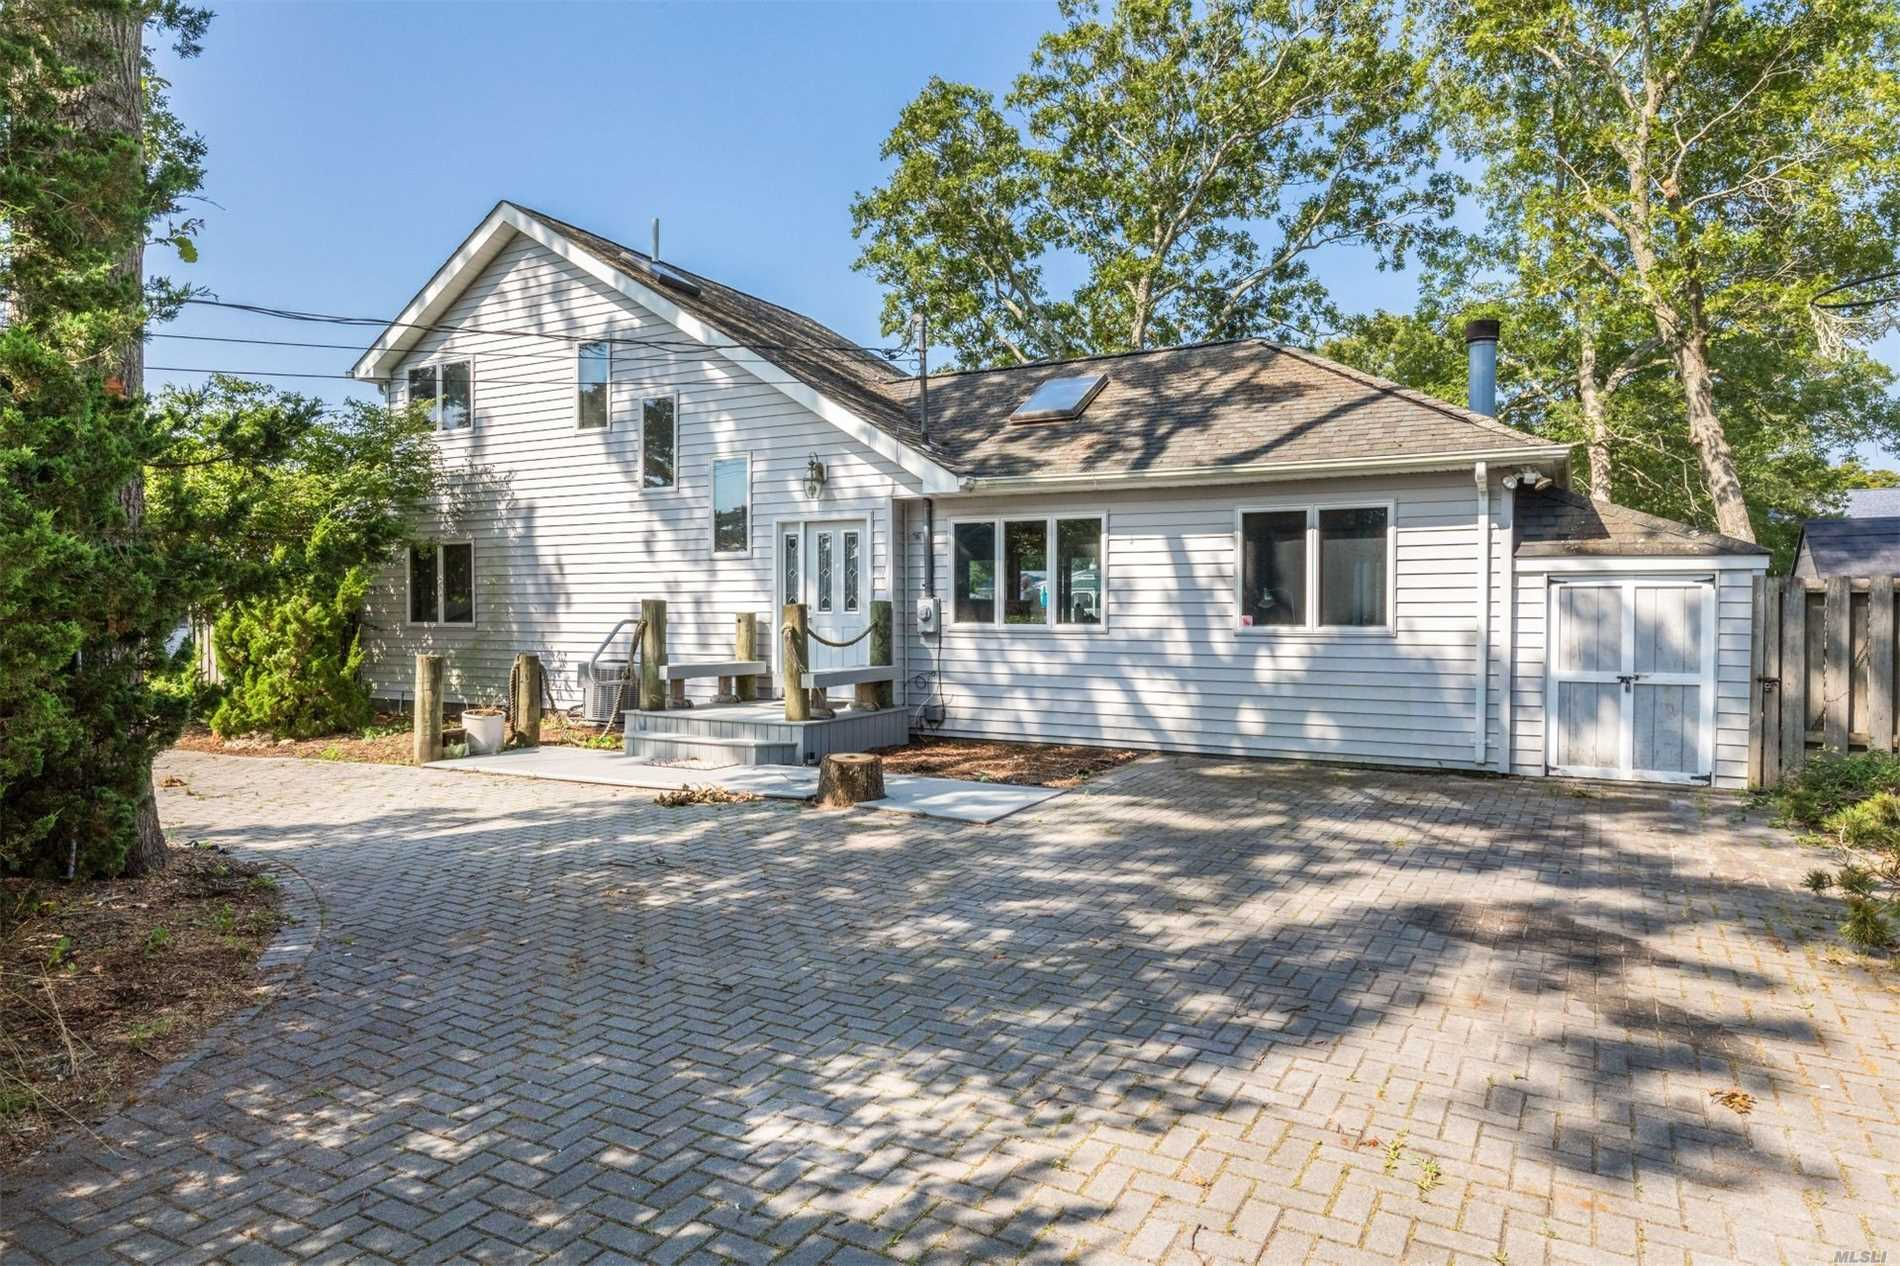 Close To Restaurants, Shopping, Private Beaches, And Wine Country, This 4-Br, 3-Ba Contemporary, Fully Furnished, Is Sited On A Bulkheaded Canal. Perfect For Boaters And Fishermen (Or Women). Has An Expansive Deck With A Hot Tub.